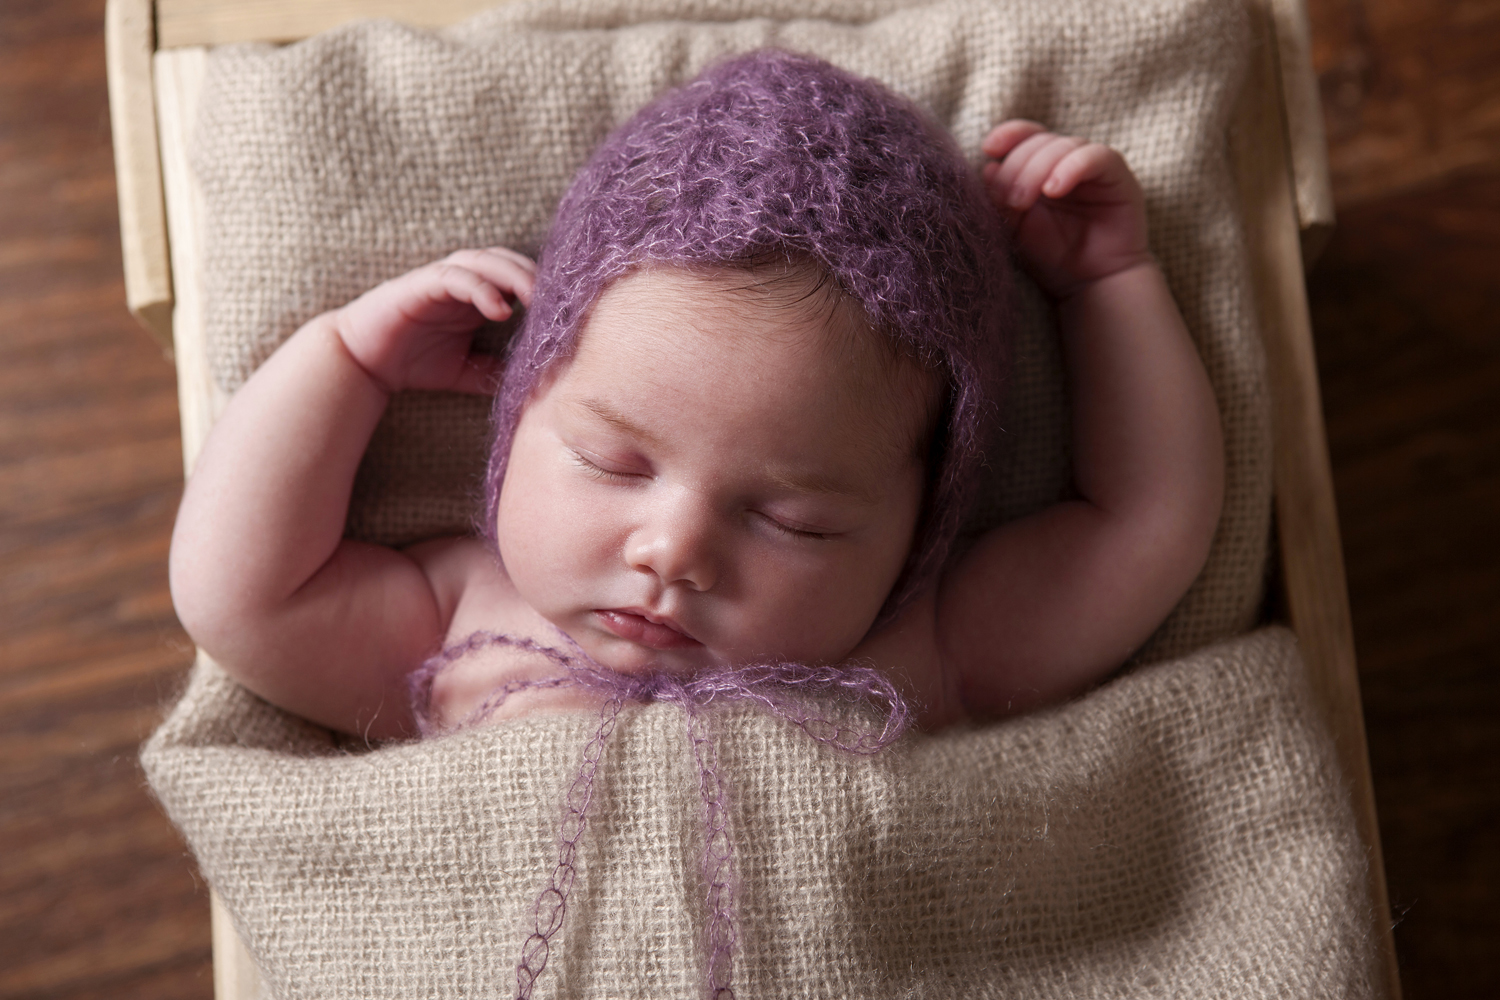 newborn baby child photography bourneouth dorset family portraits.jpg